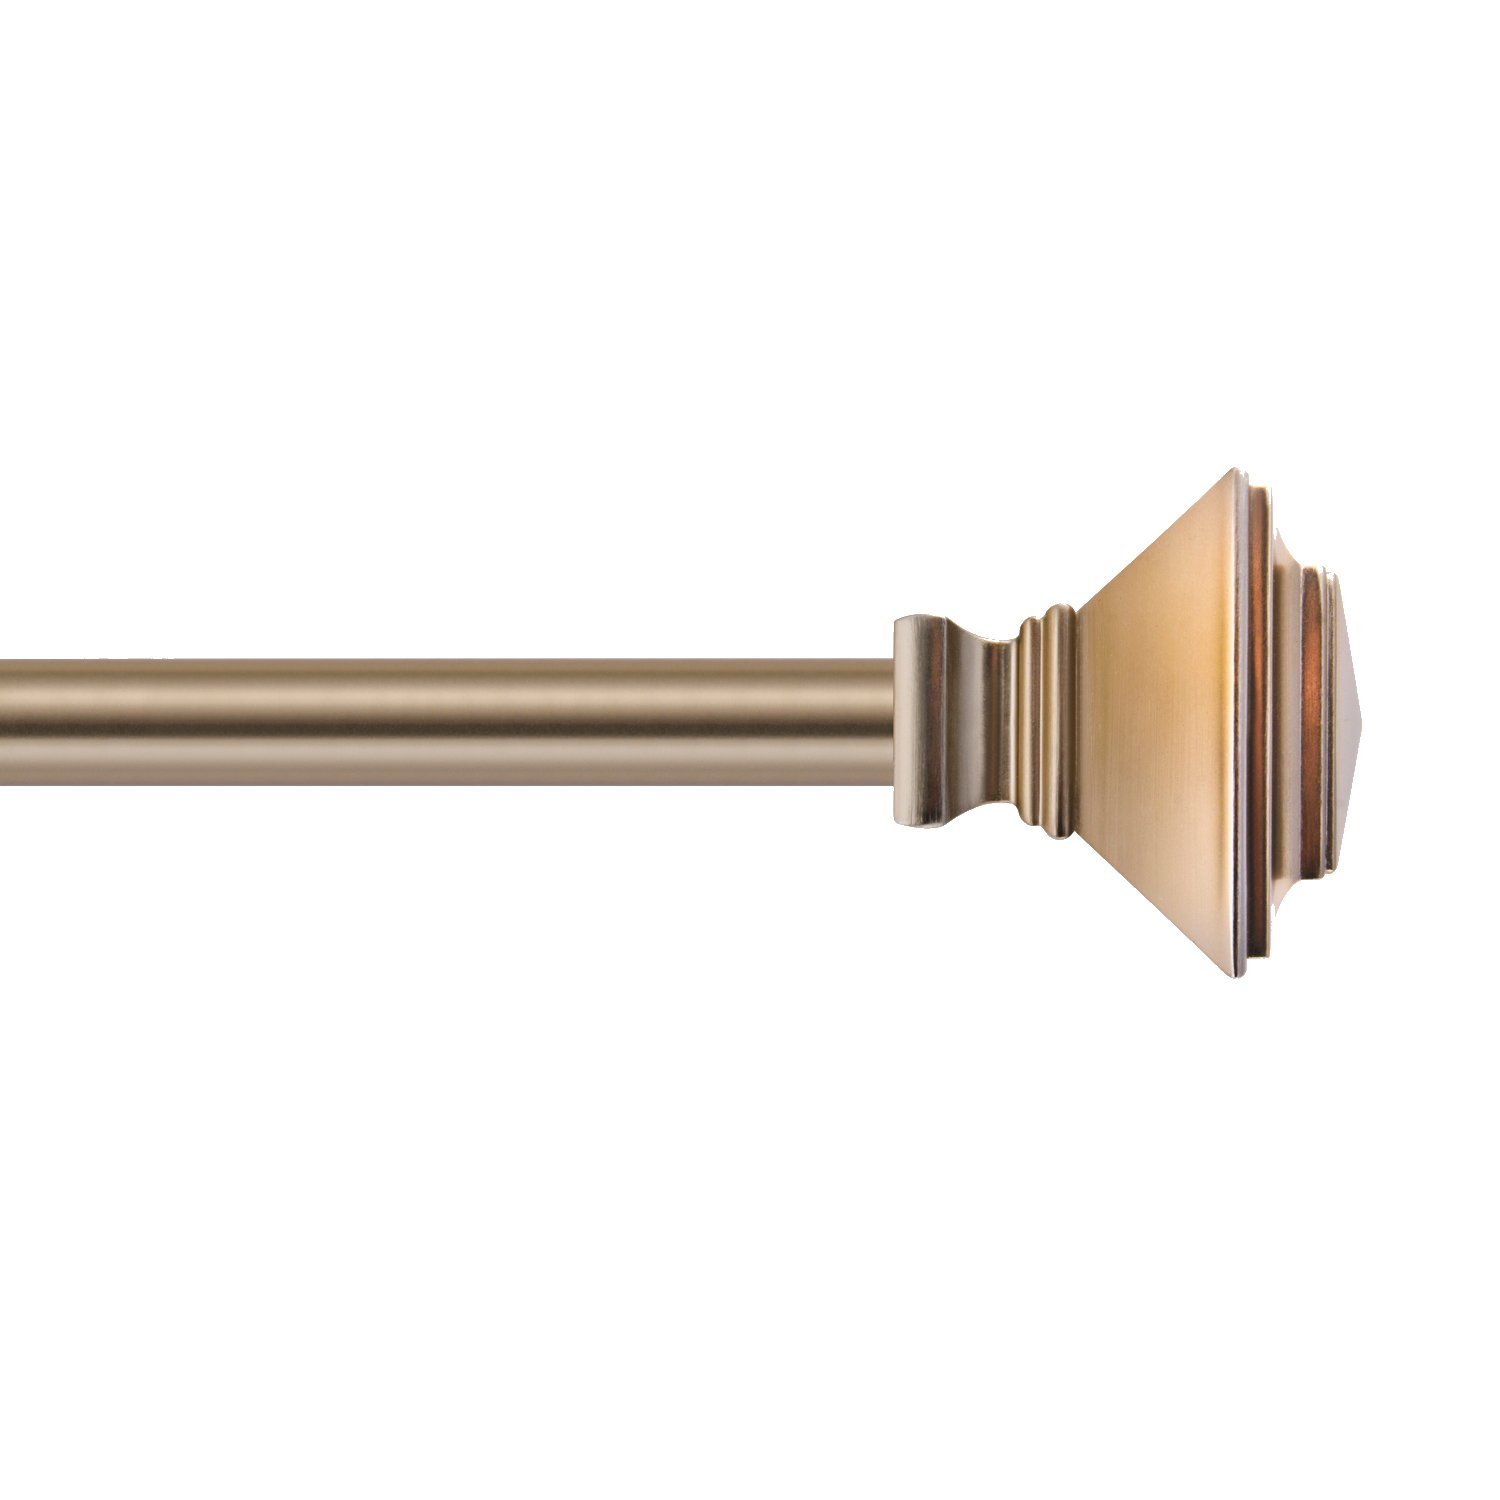 Sheffield Home, AMG and Enchante Accessories Pyramid Curtain Rod 36 to 66-Inch, R2212 WGD, Warm Gold